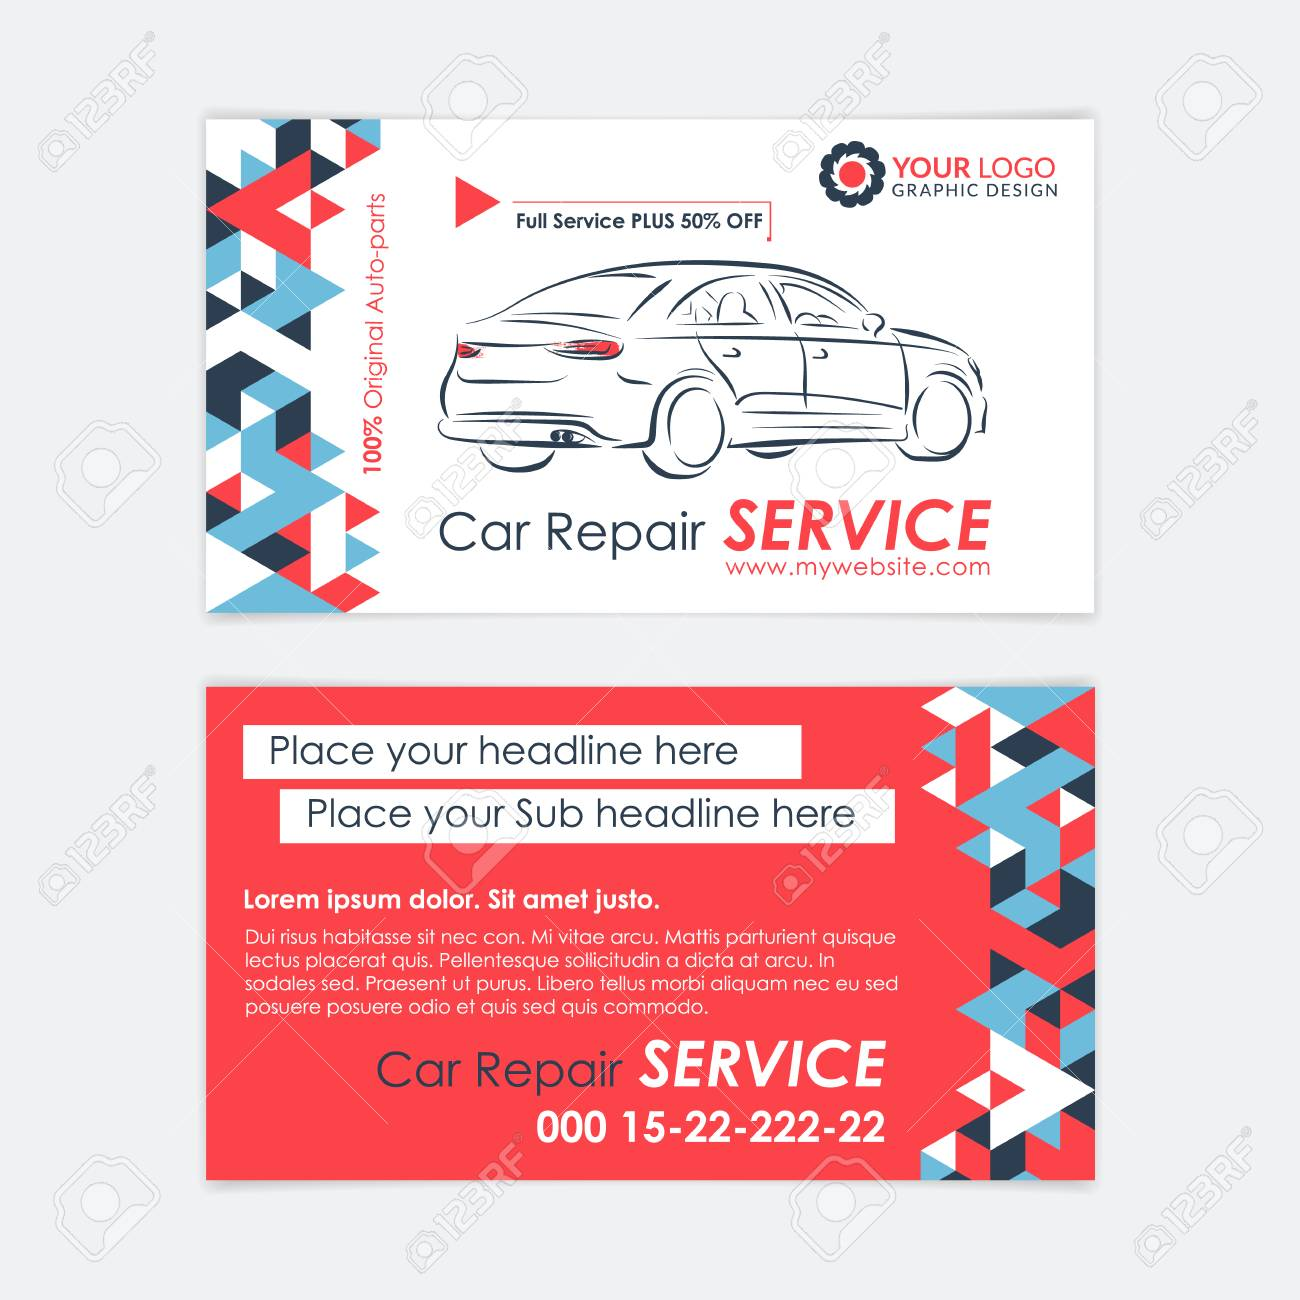 Automotive service business card template car diagnostics and automotive service business card template car diagnostics and transport repair create your own business friedricerecipe Images